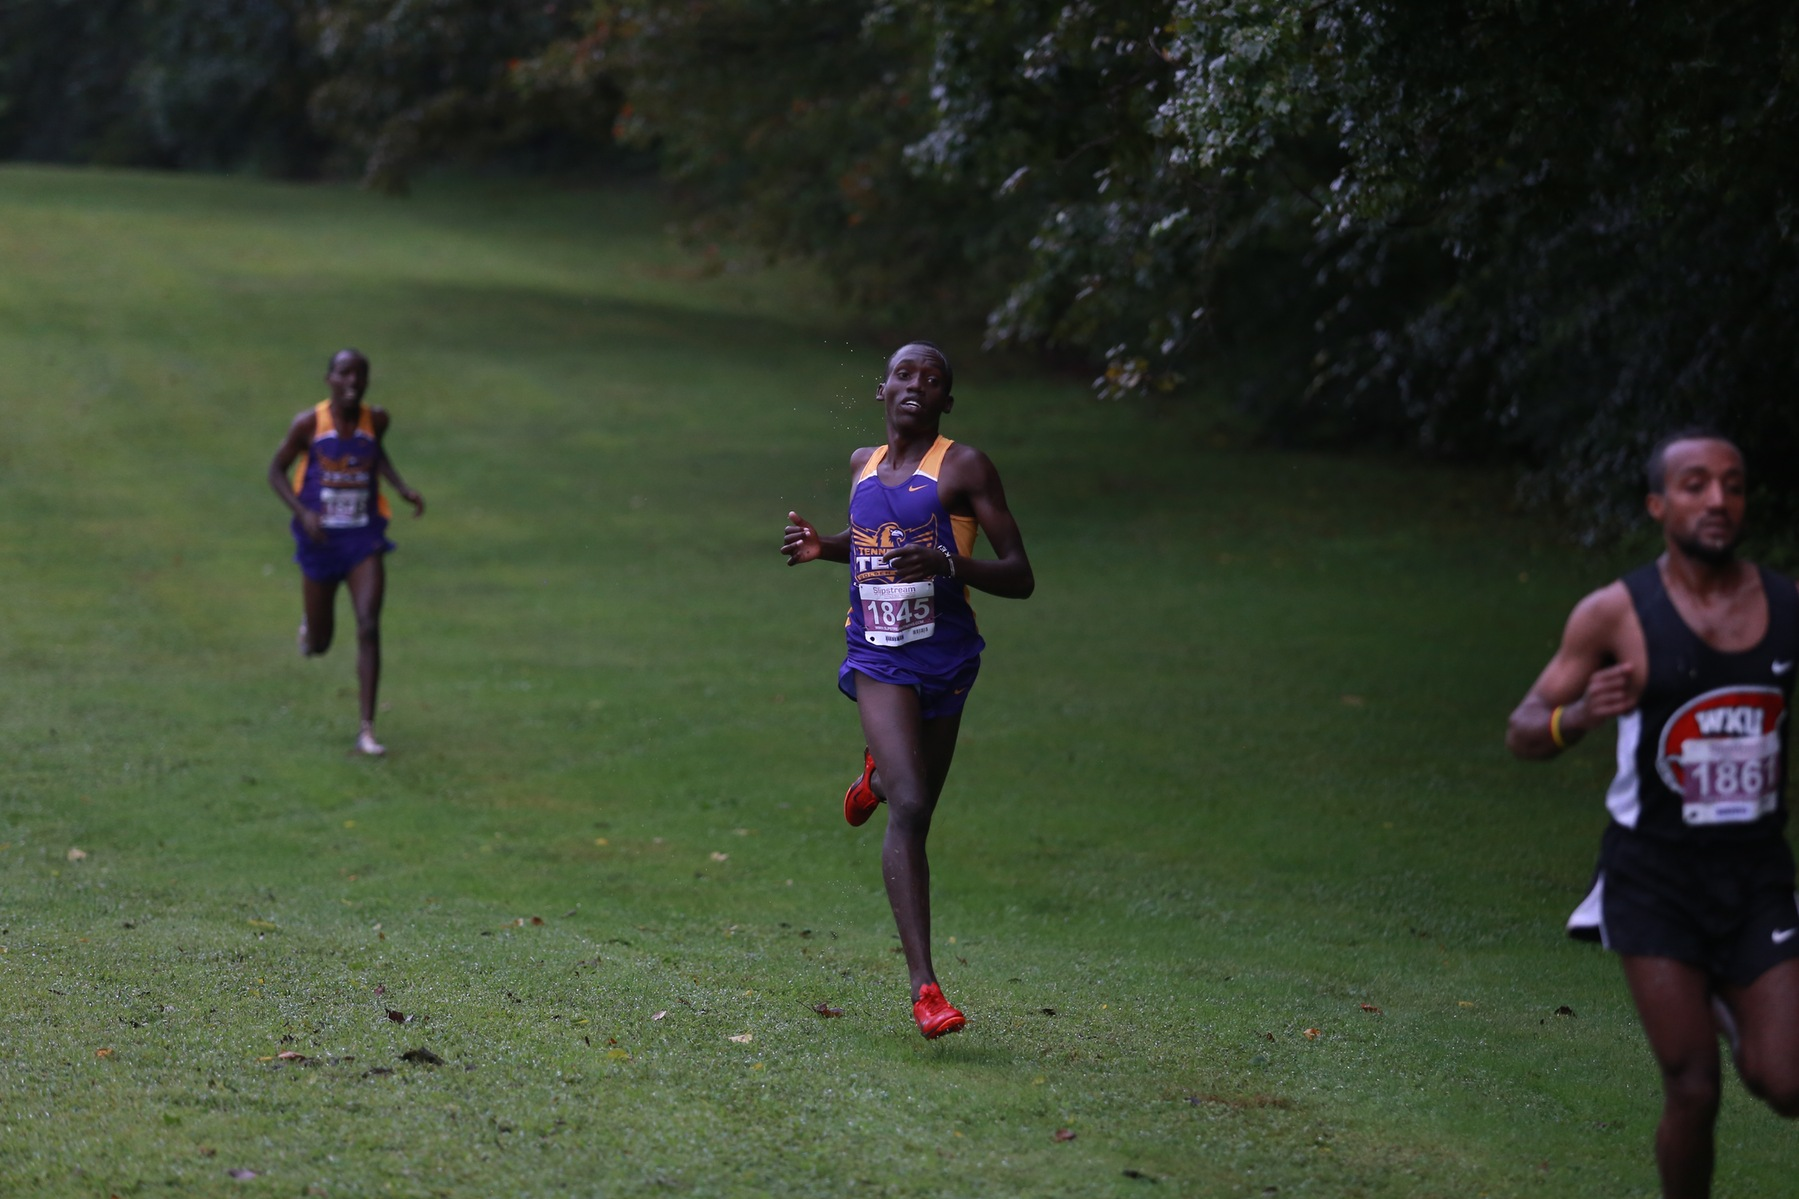 Tech men's cross country returns to action at Florida's Mountain Dew Invitational